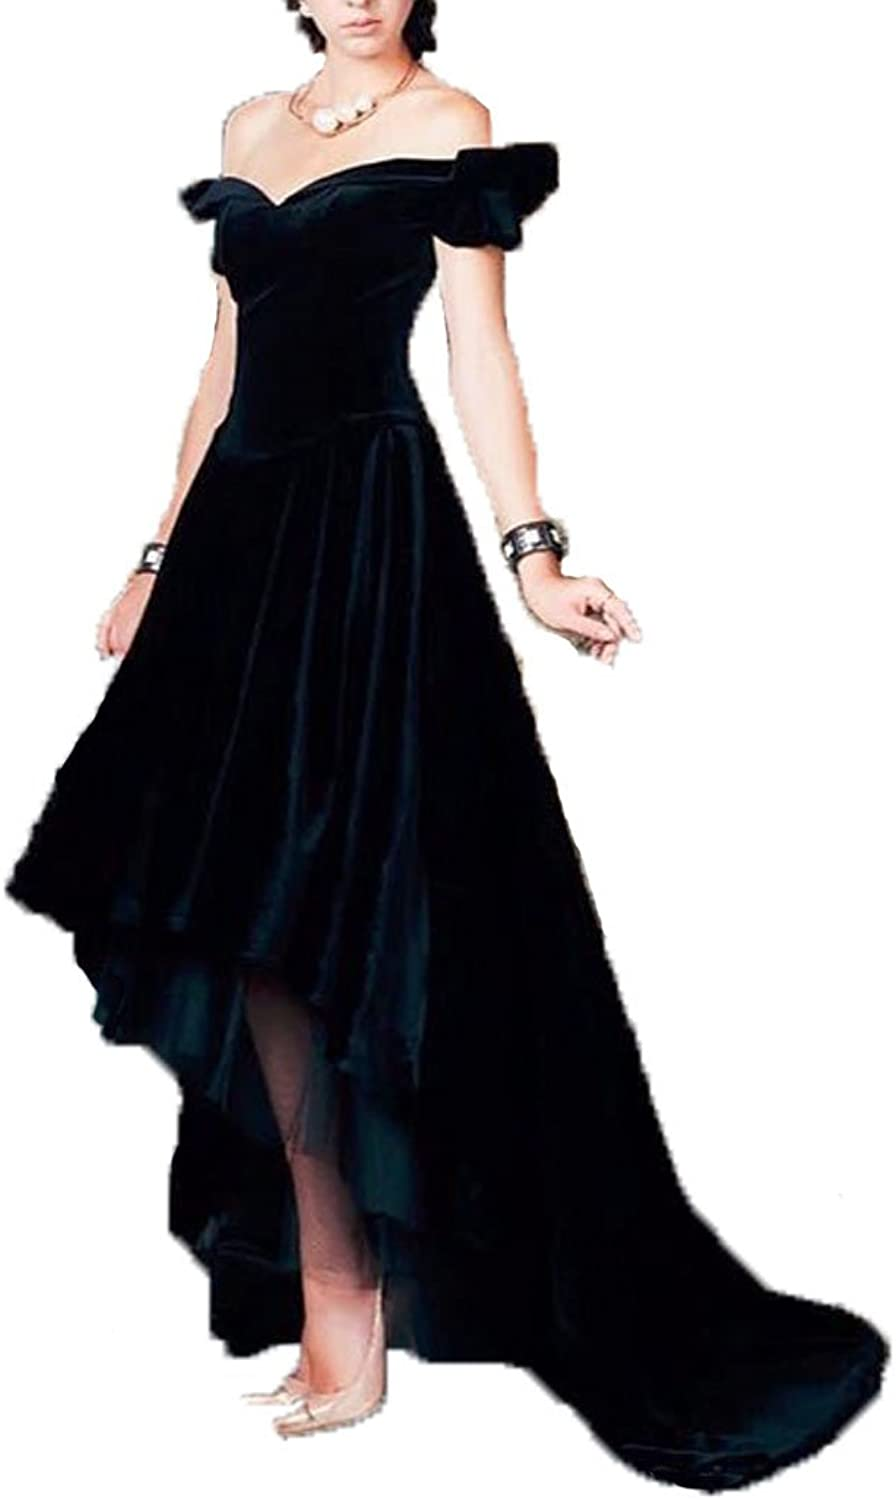 DKBridal Women's Black Velvet Cap Sleeves Evening Dresses High Low Prom Gown